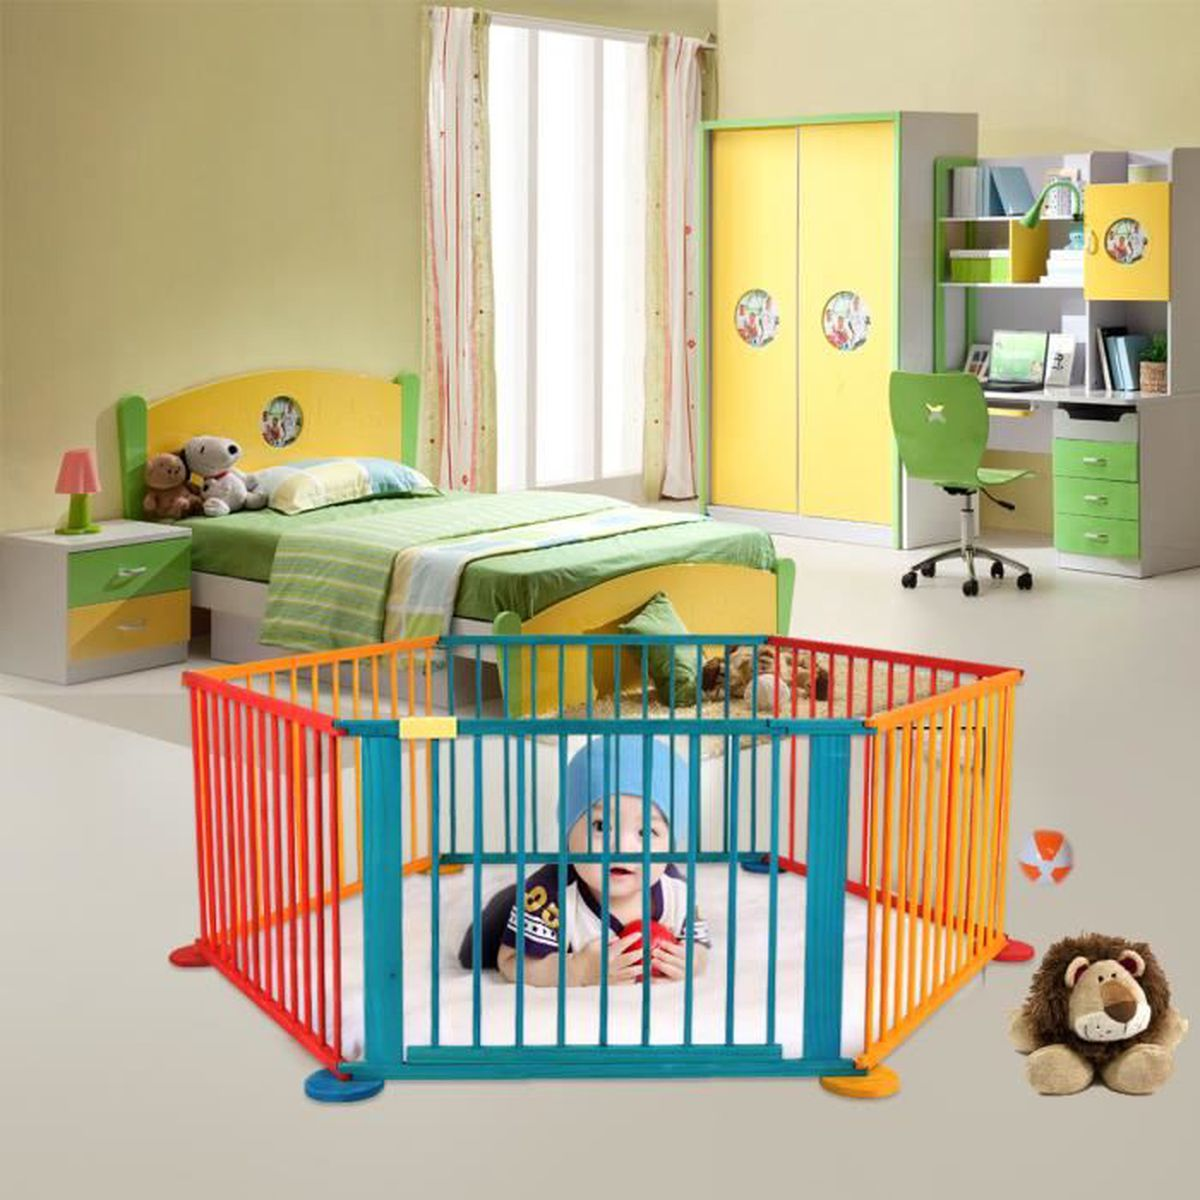 barri re de s curit enfant b b pliable parc bois 6 c t s parfeu de chemin e protection comme. Black Bedroom Furniture Sets. Home Design Ideas